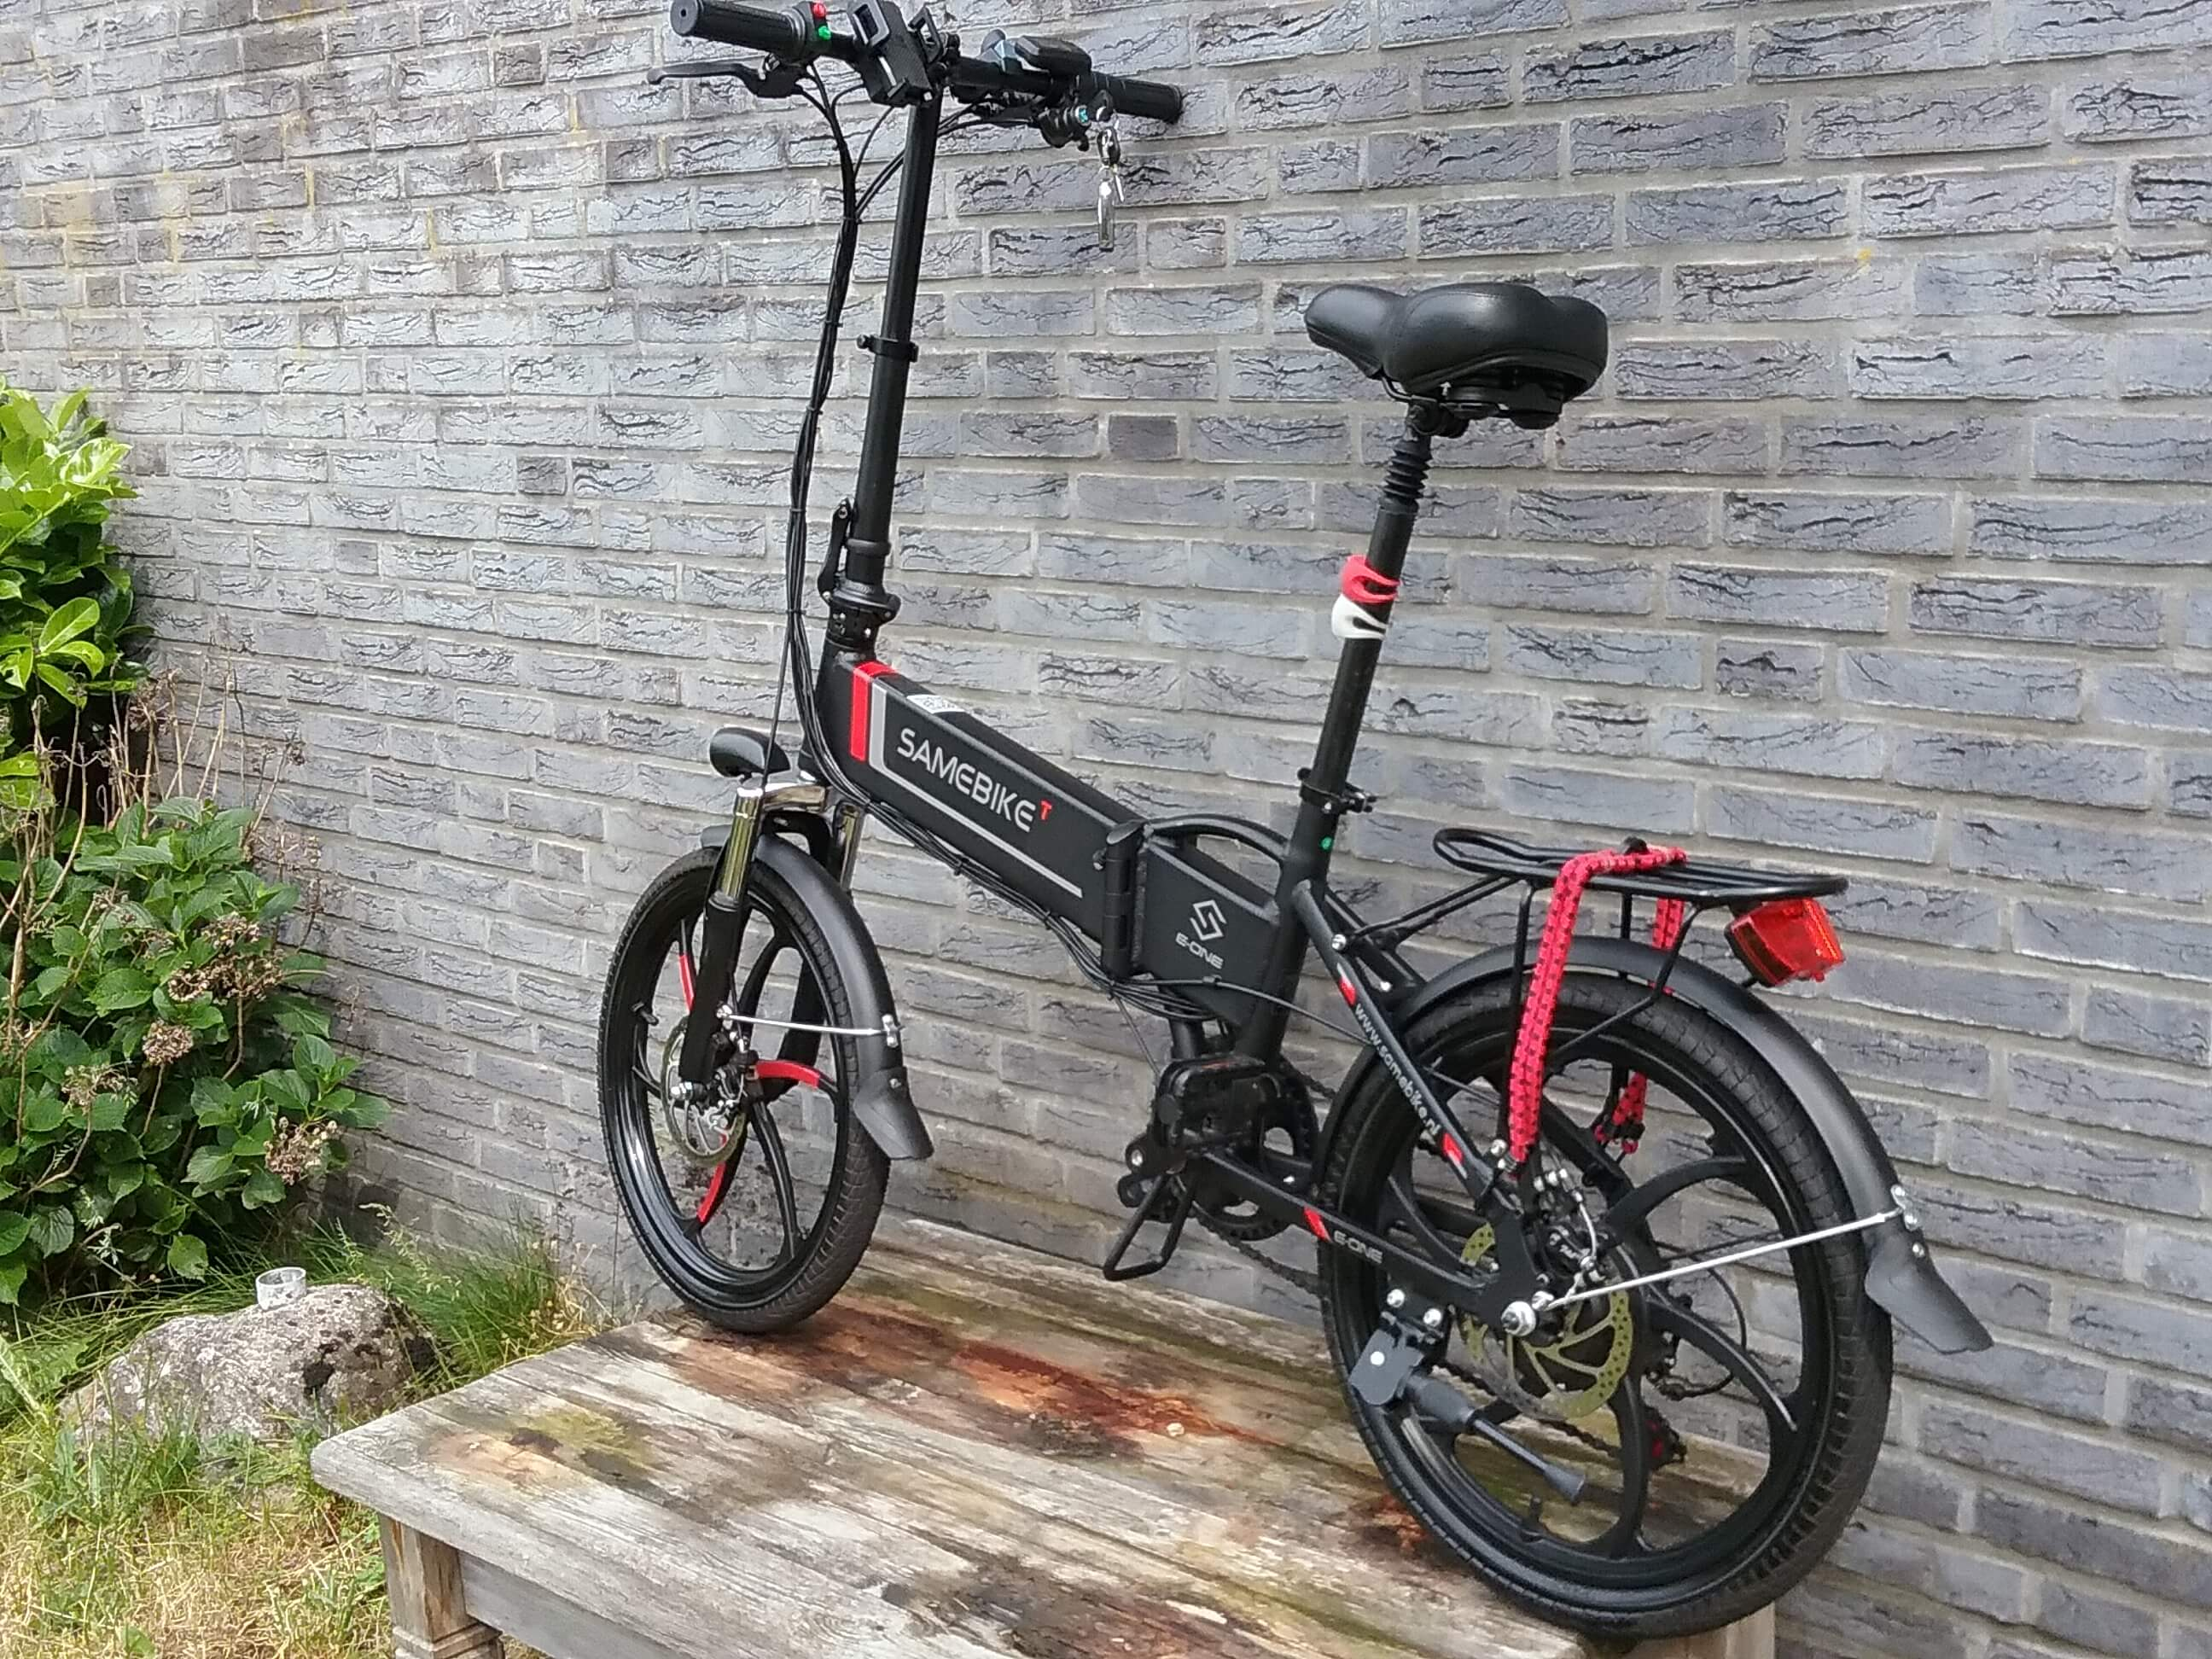 samebike lo26 amazon , samebike lo26 analisis , samebike lo26 assembly , samebike lo26 aliexpress , samebike akku , samebike avis , samebike jg avis , samebike 20lvxd30 avis , samebike battery , same bike build , samebike bisiklet , samebike electric bike , samebike lo26 battery , samebike e bike , bicicleta samebike , batteria samebike lo26 , bullet same bike , samebike china , samebike coupon